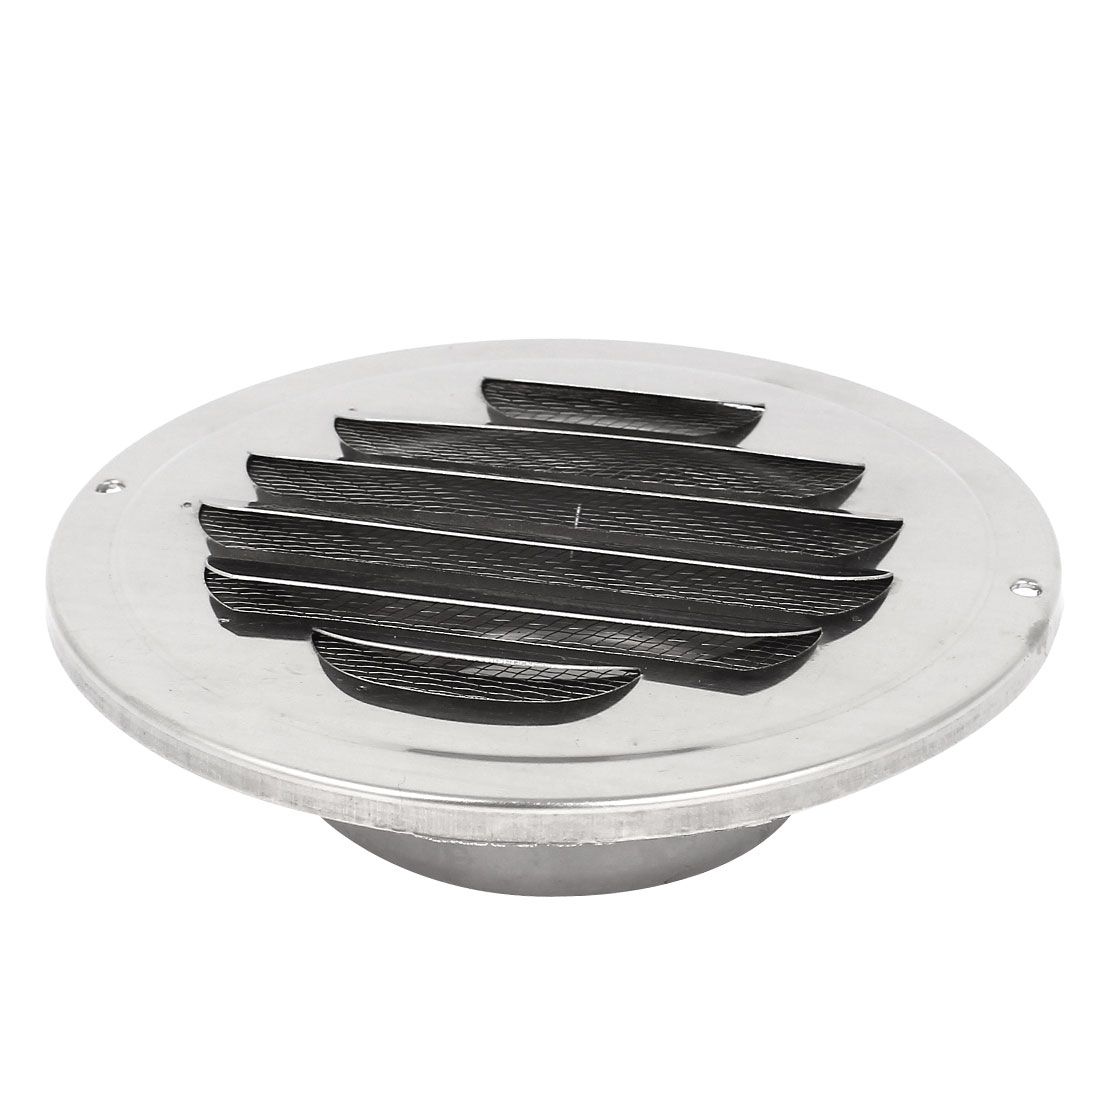 Wall Mounted Circular Stainless Steel Ventilation Air Vent Grille Cover 80mm 3""